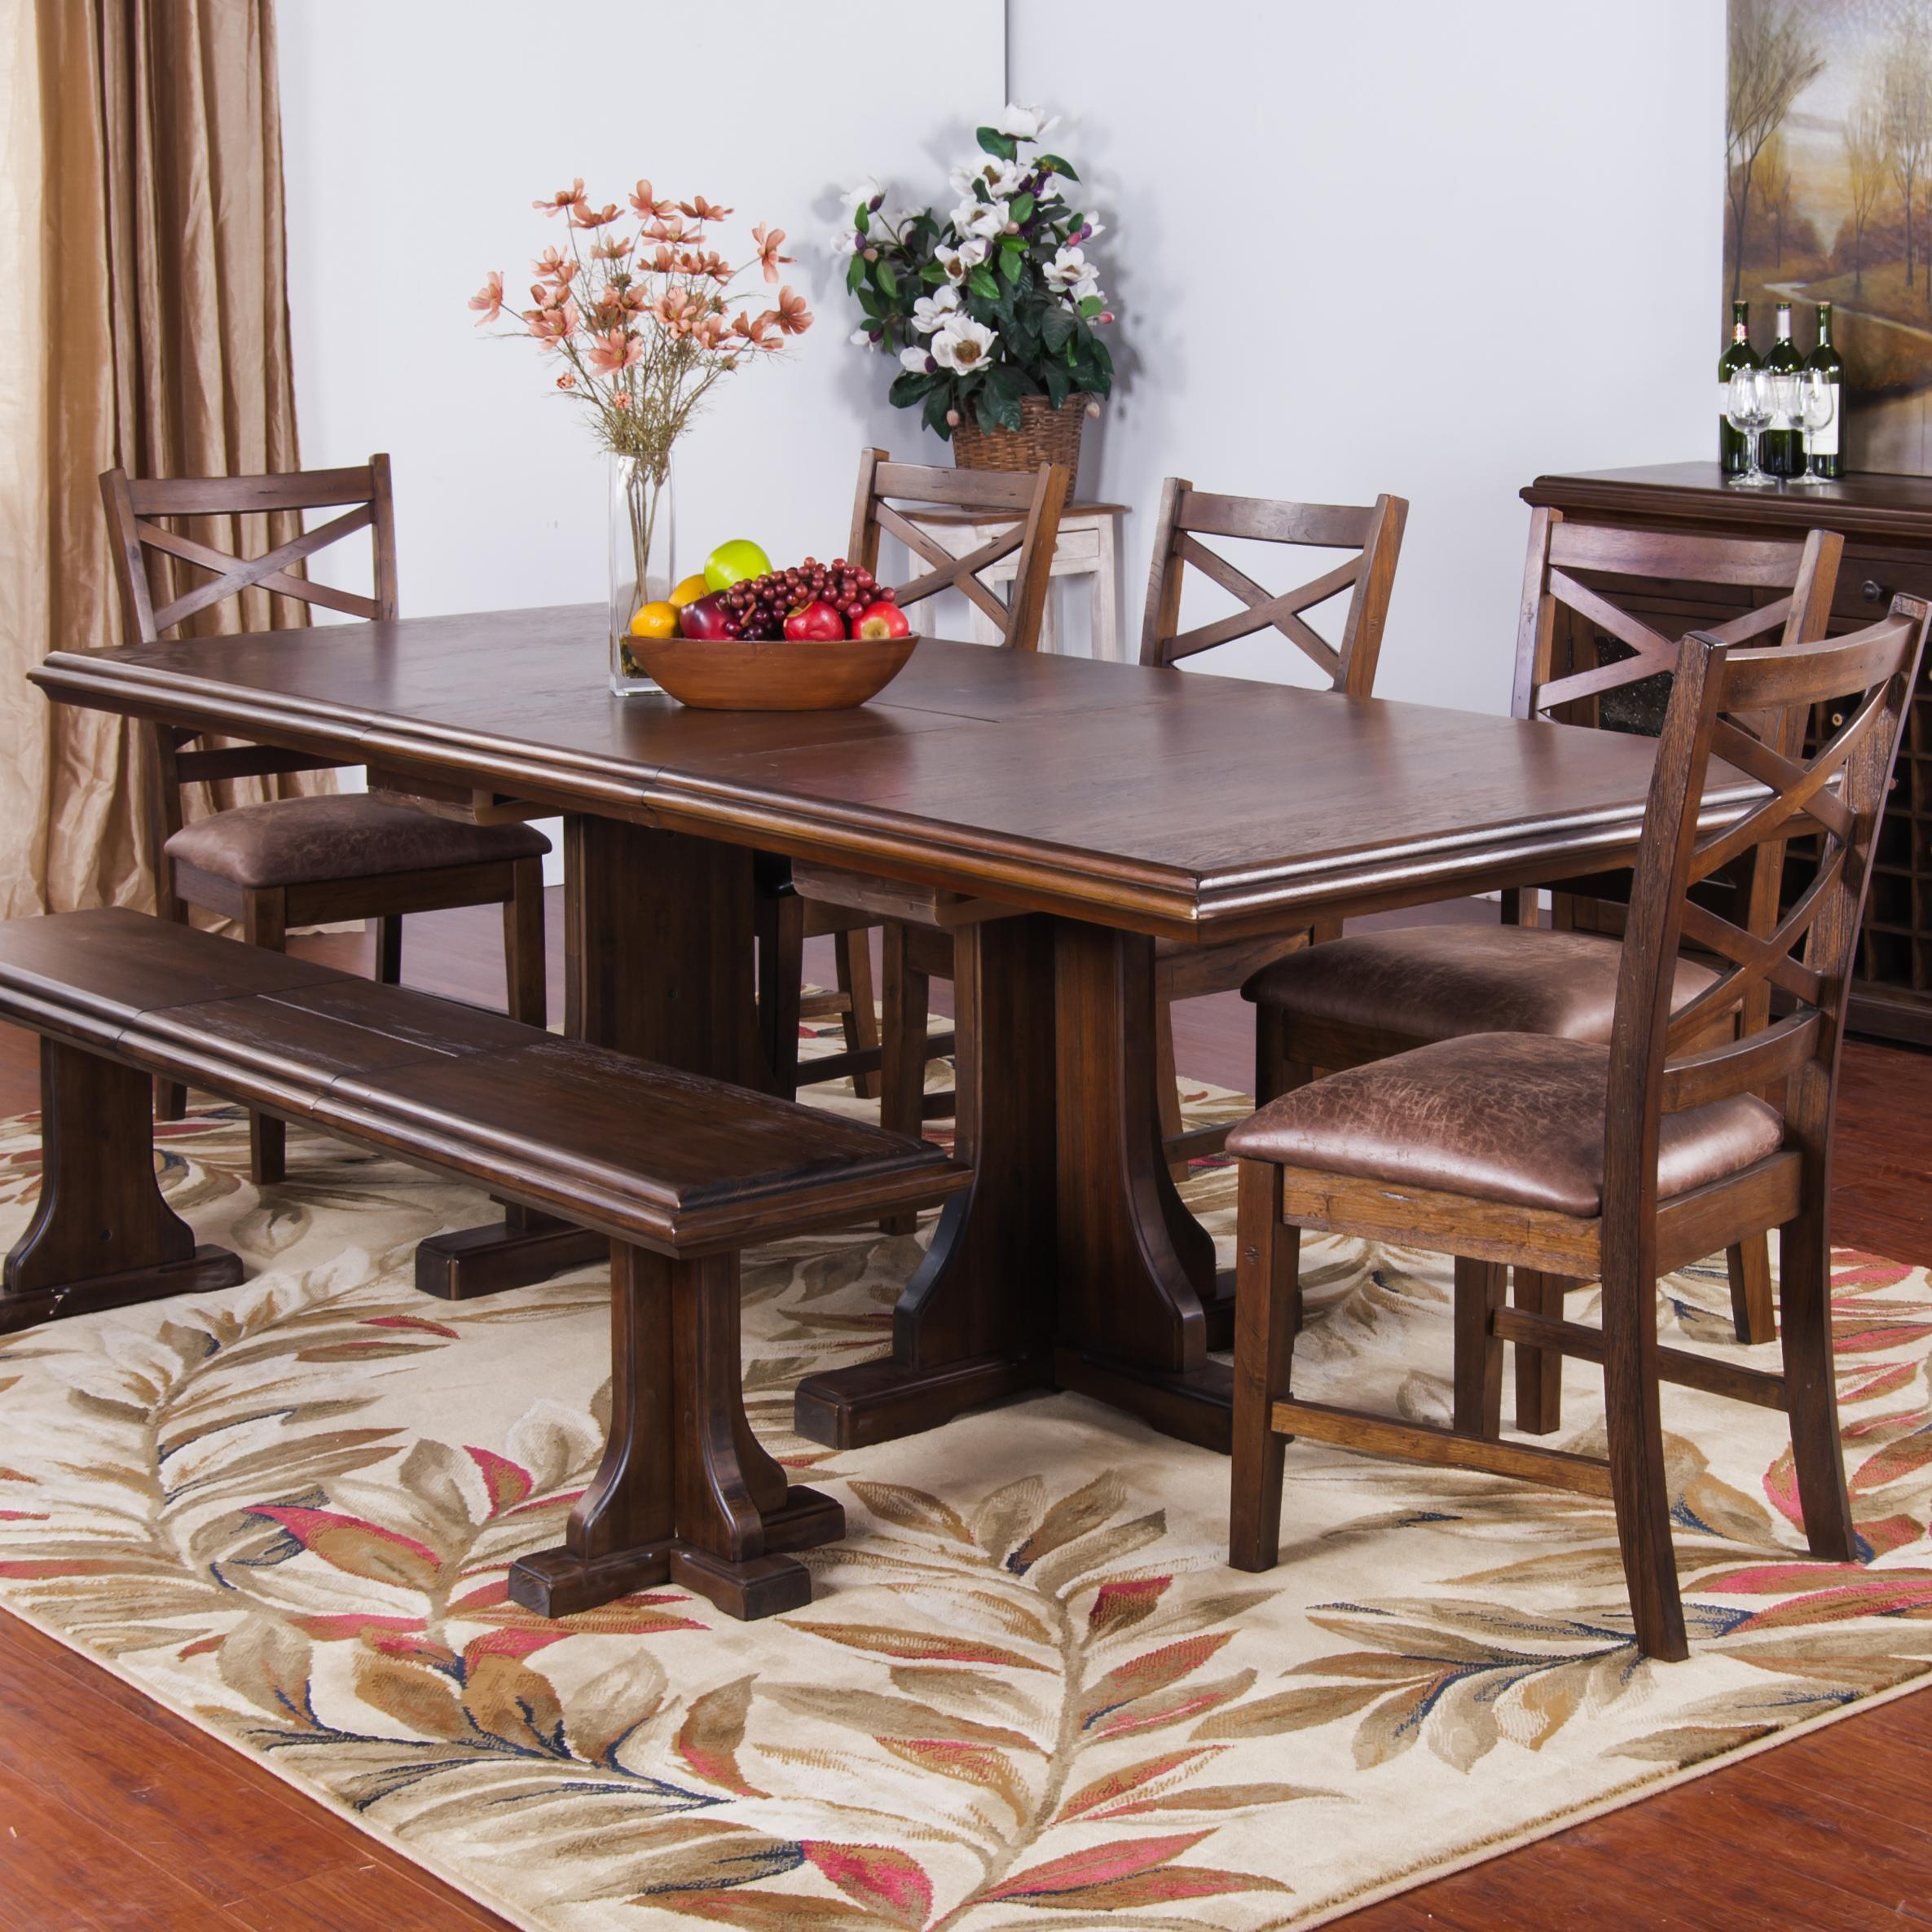 Sunny Designs Savannah Extension Dining Table Counter